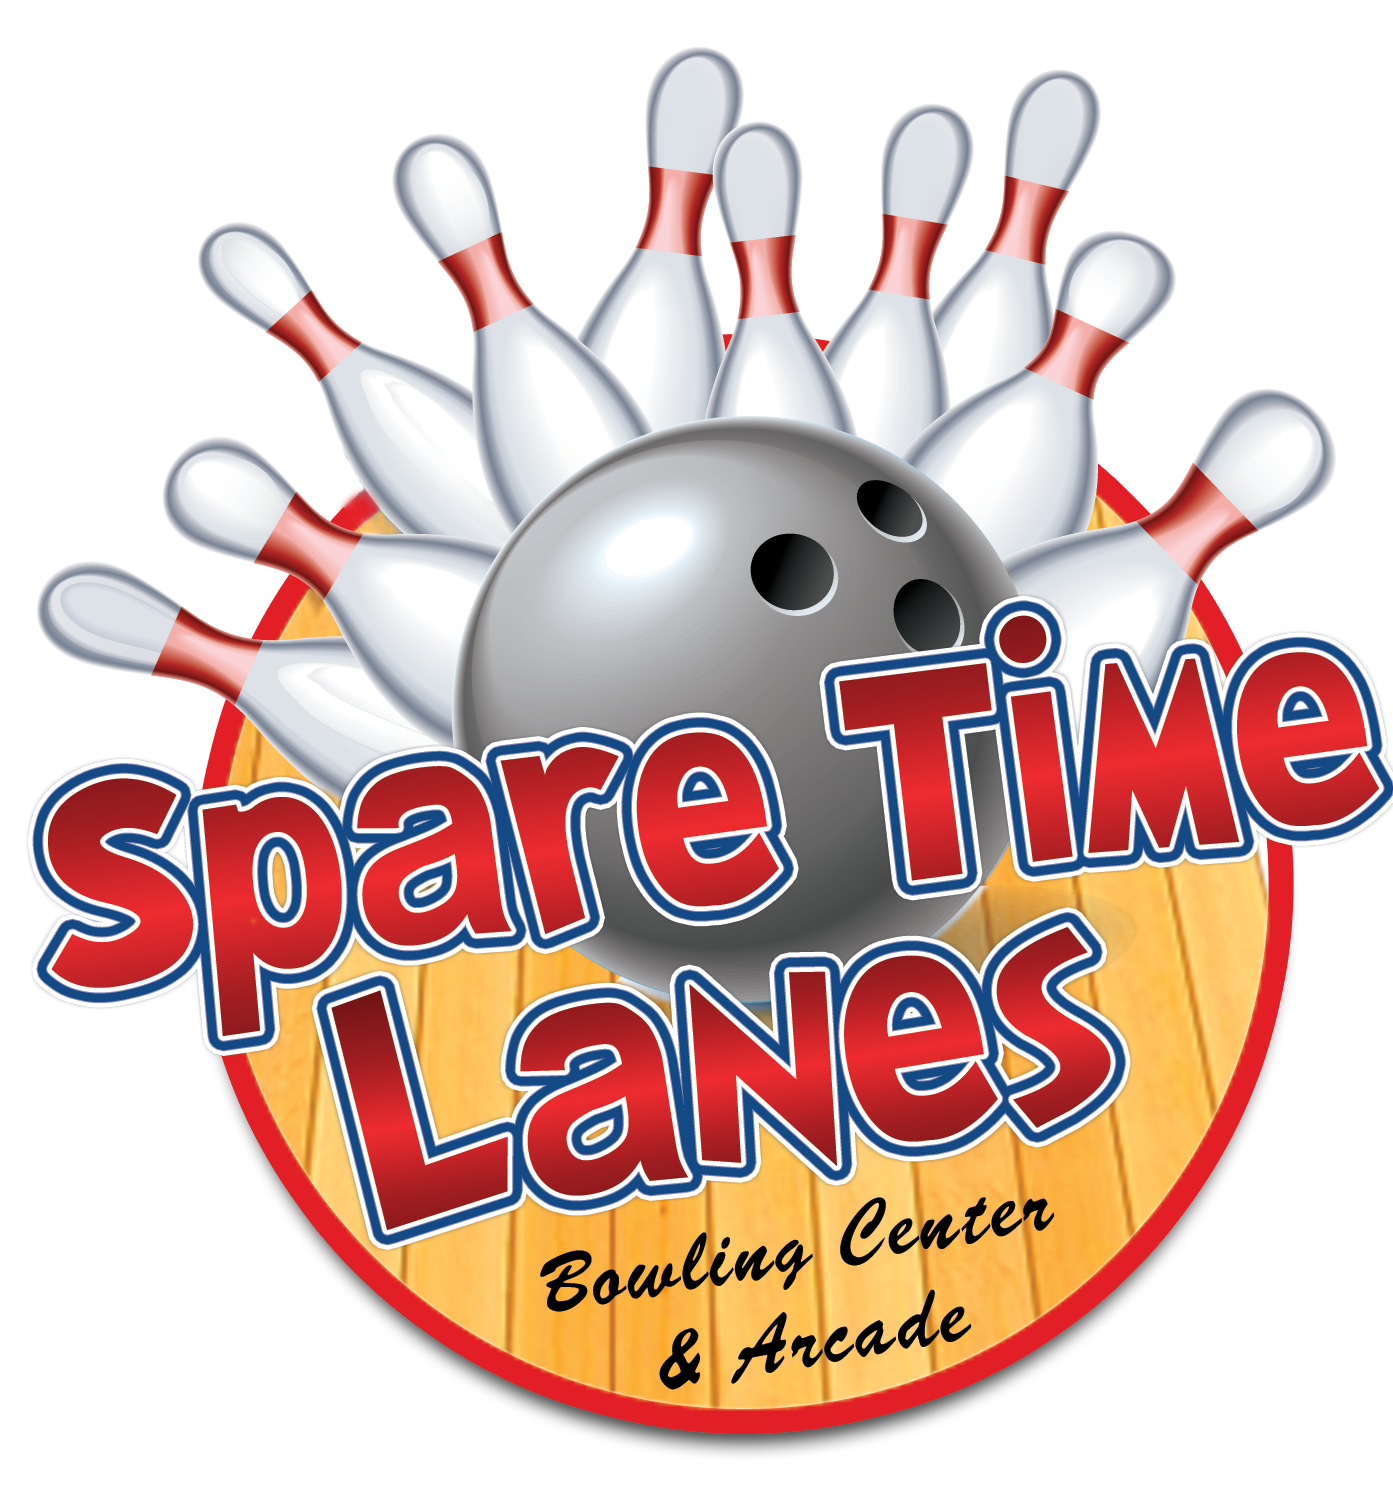 Spare Time Lanes | Free Rein Marketing Client